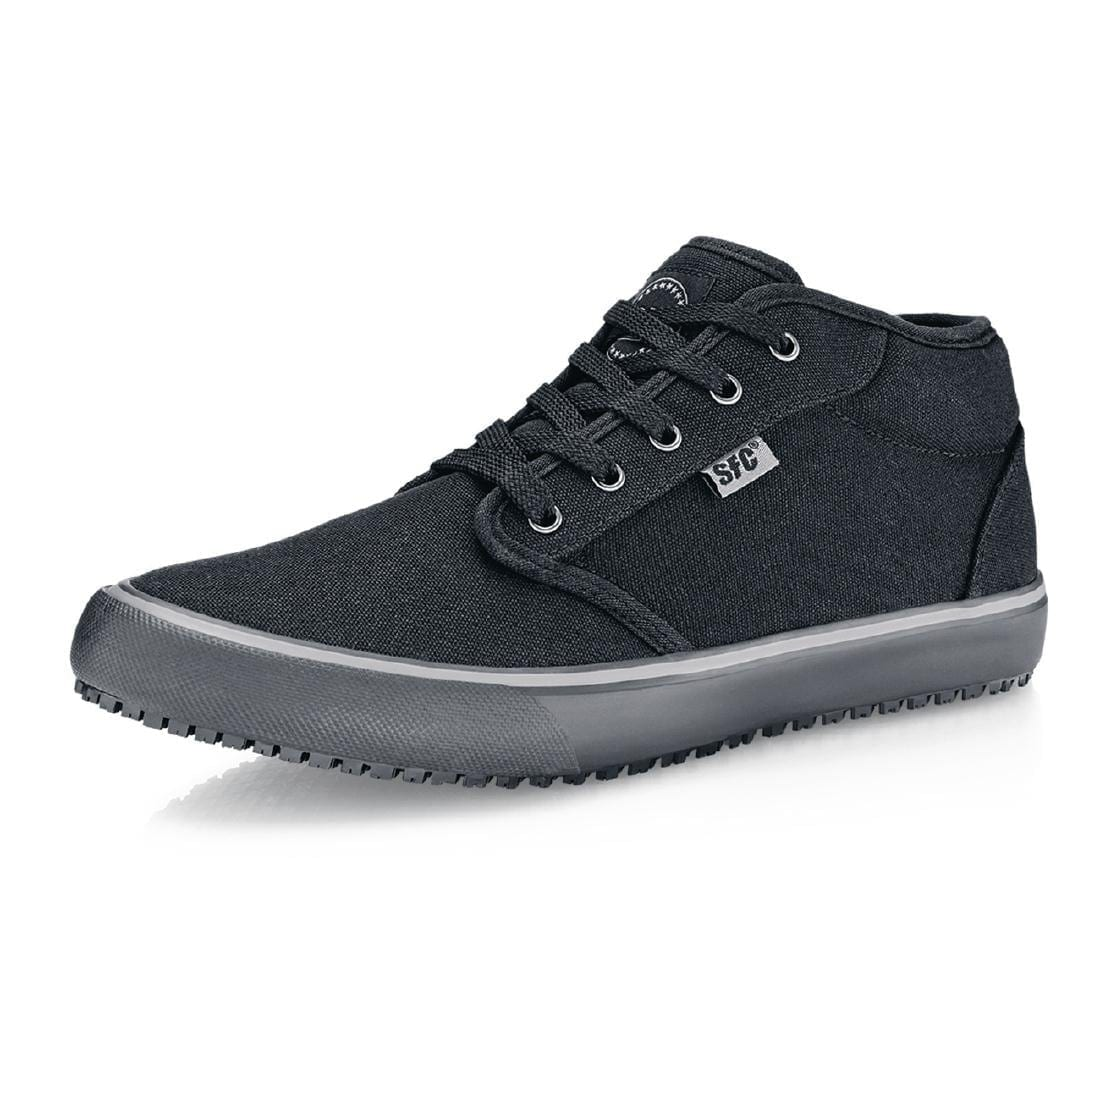 Shoes For Crews Coated Canvas Lace up Boot - Size 46-0